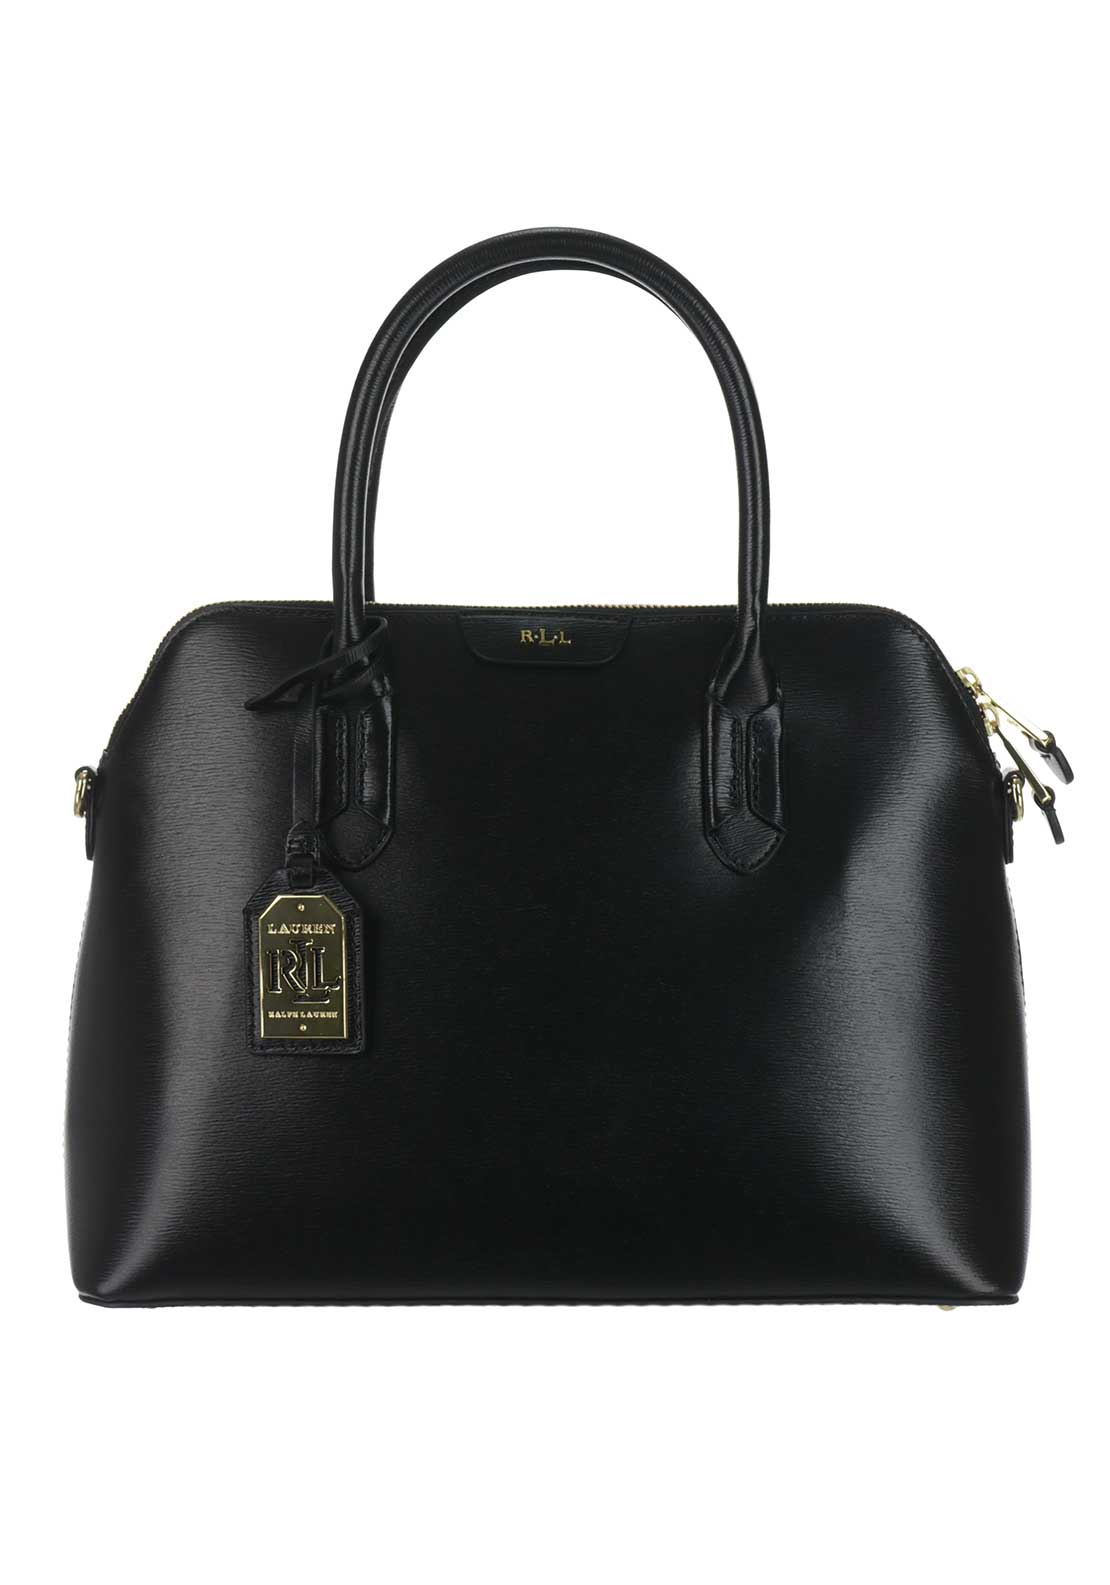 Ralph Lauren Tate Leather Dome Tote Bag, Black